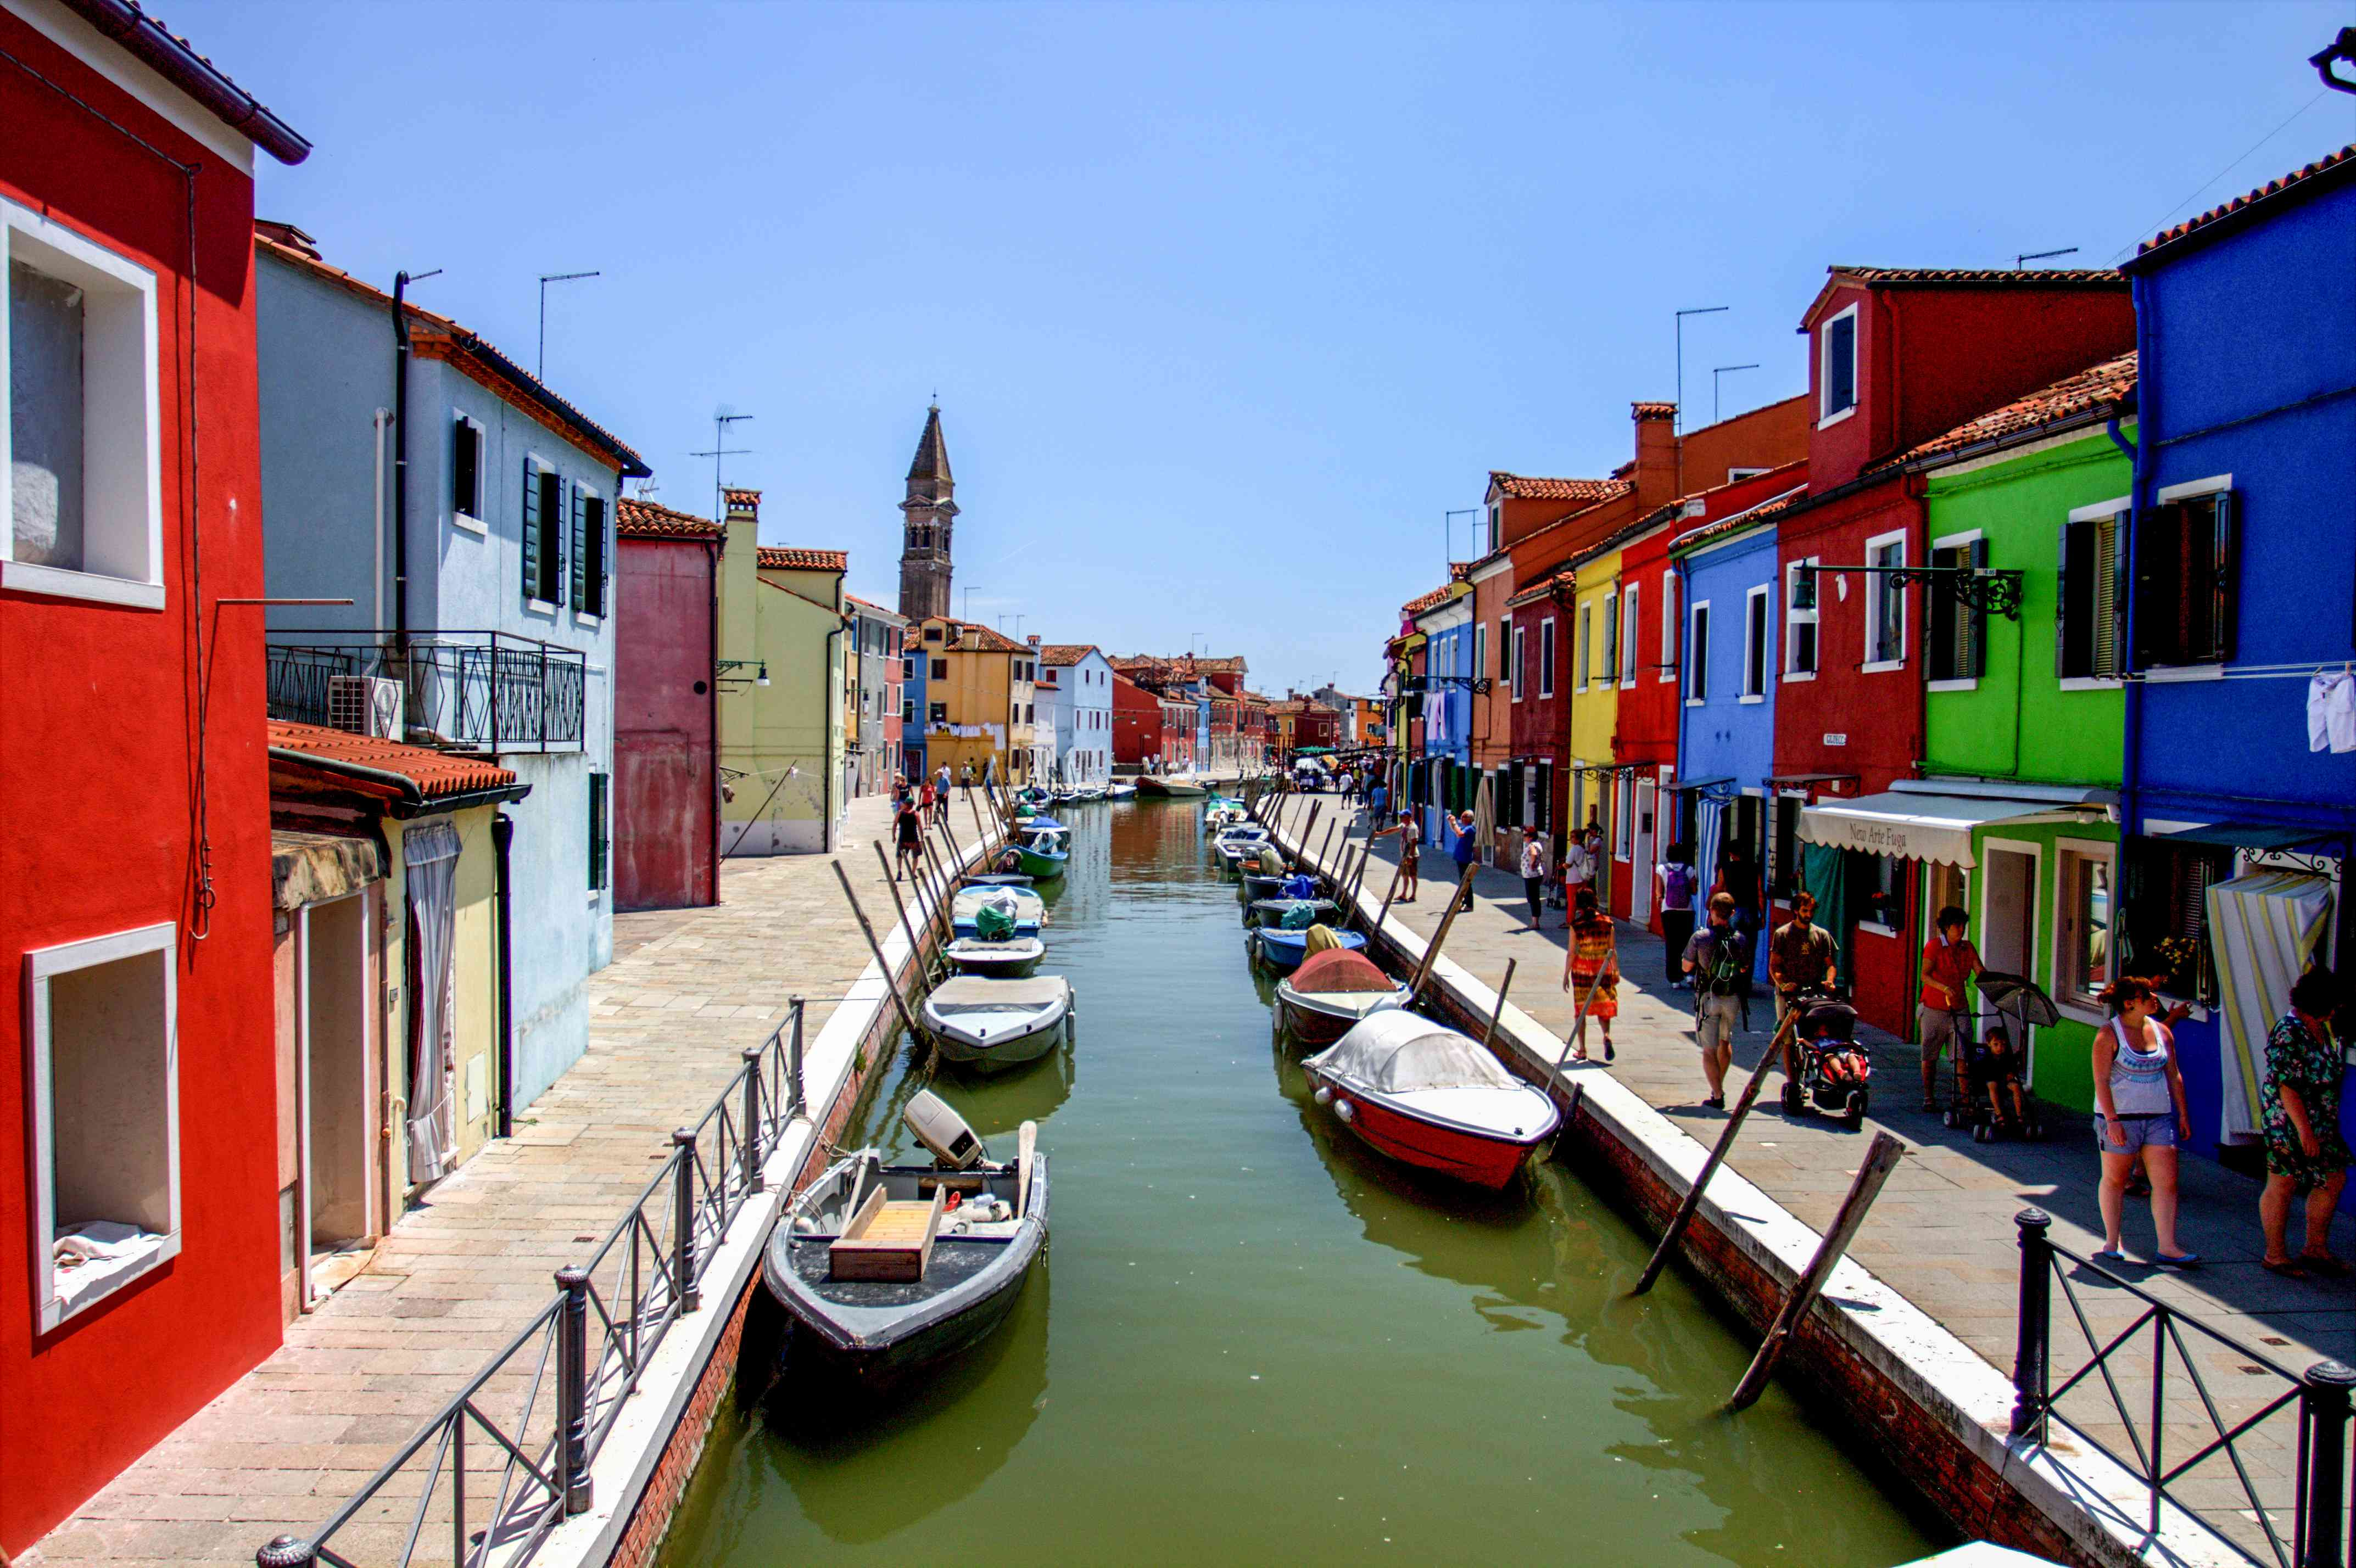 Colorful buildings along a canal in Burano, Italy